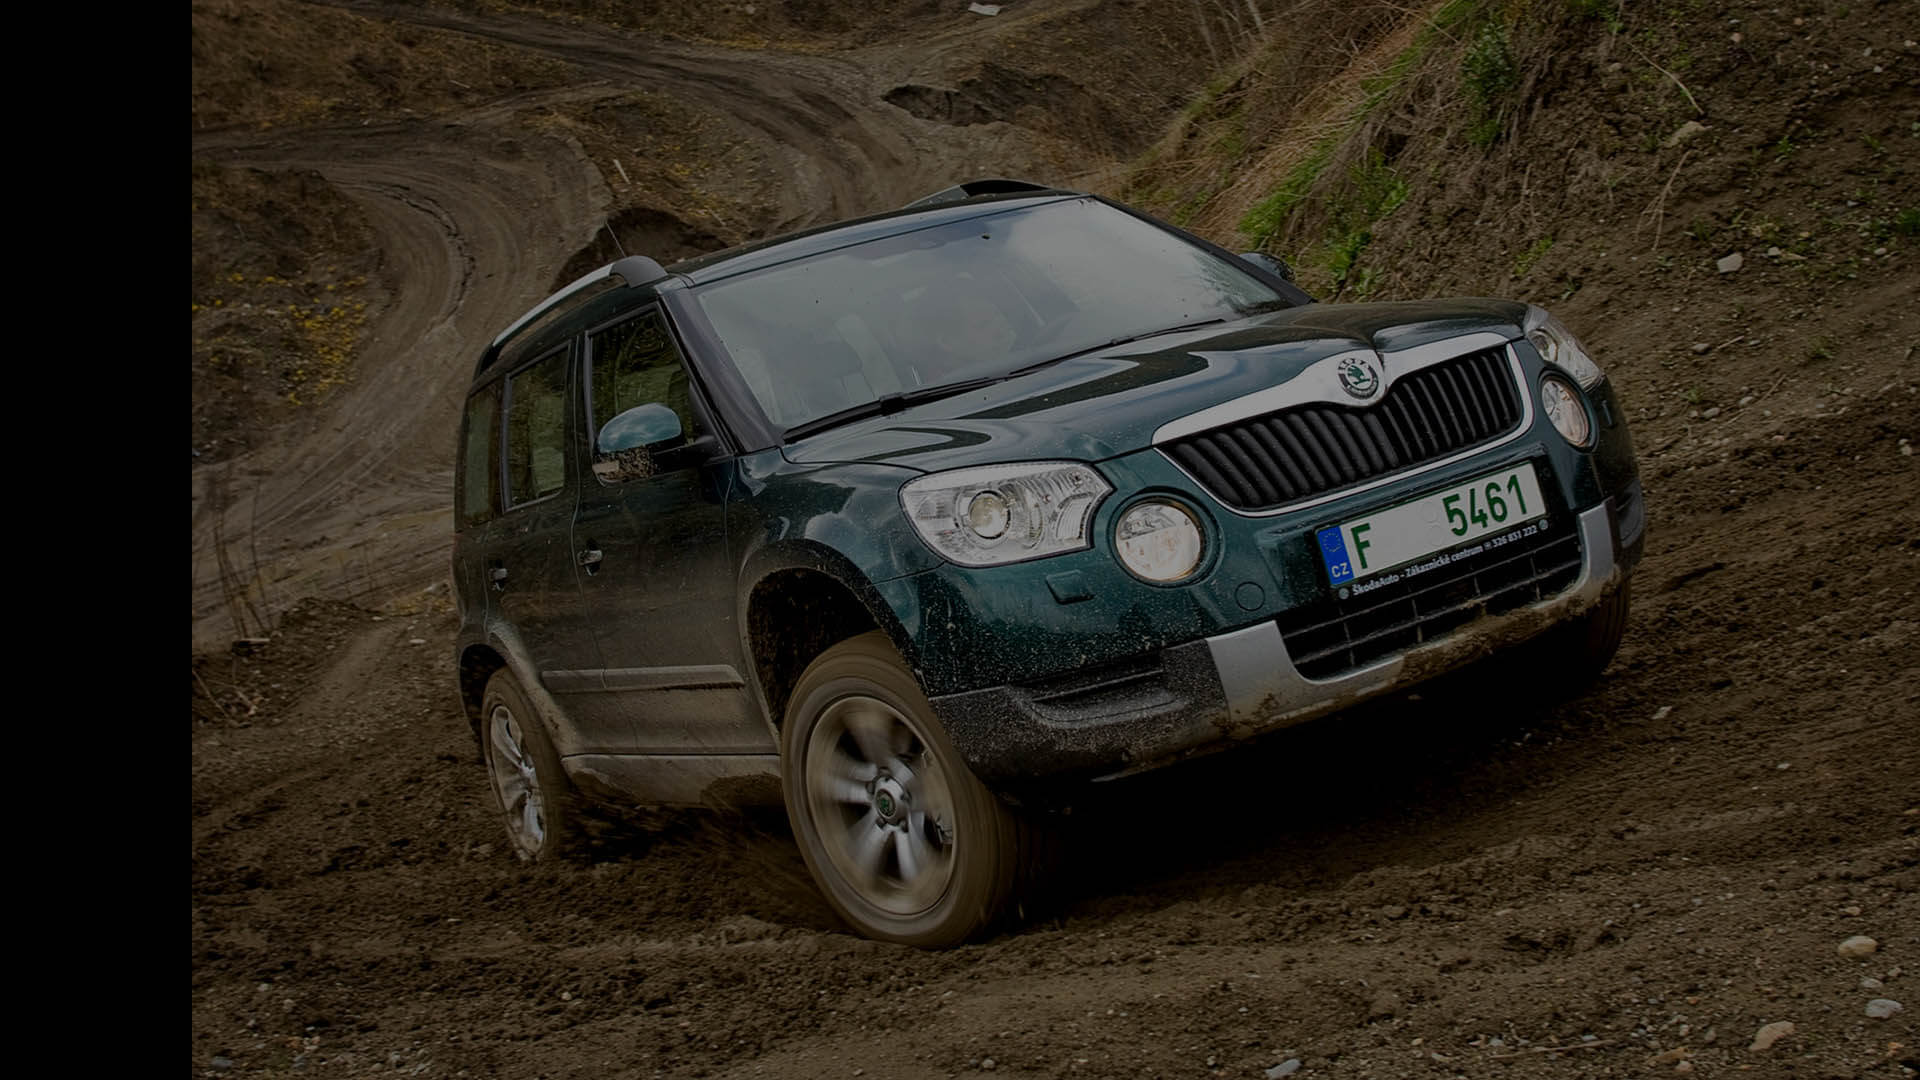 Skoda Yeti 1st Gen Carista Obd2 Supported Vehicles See What S